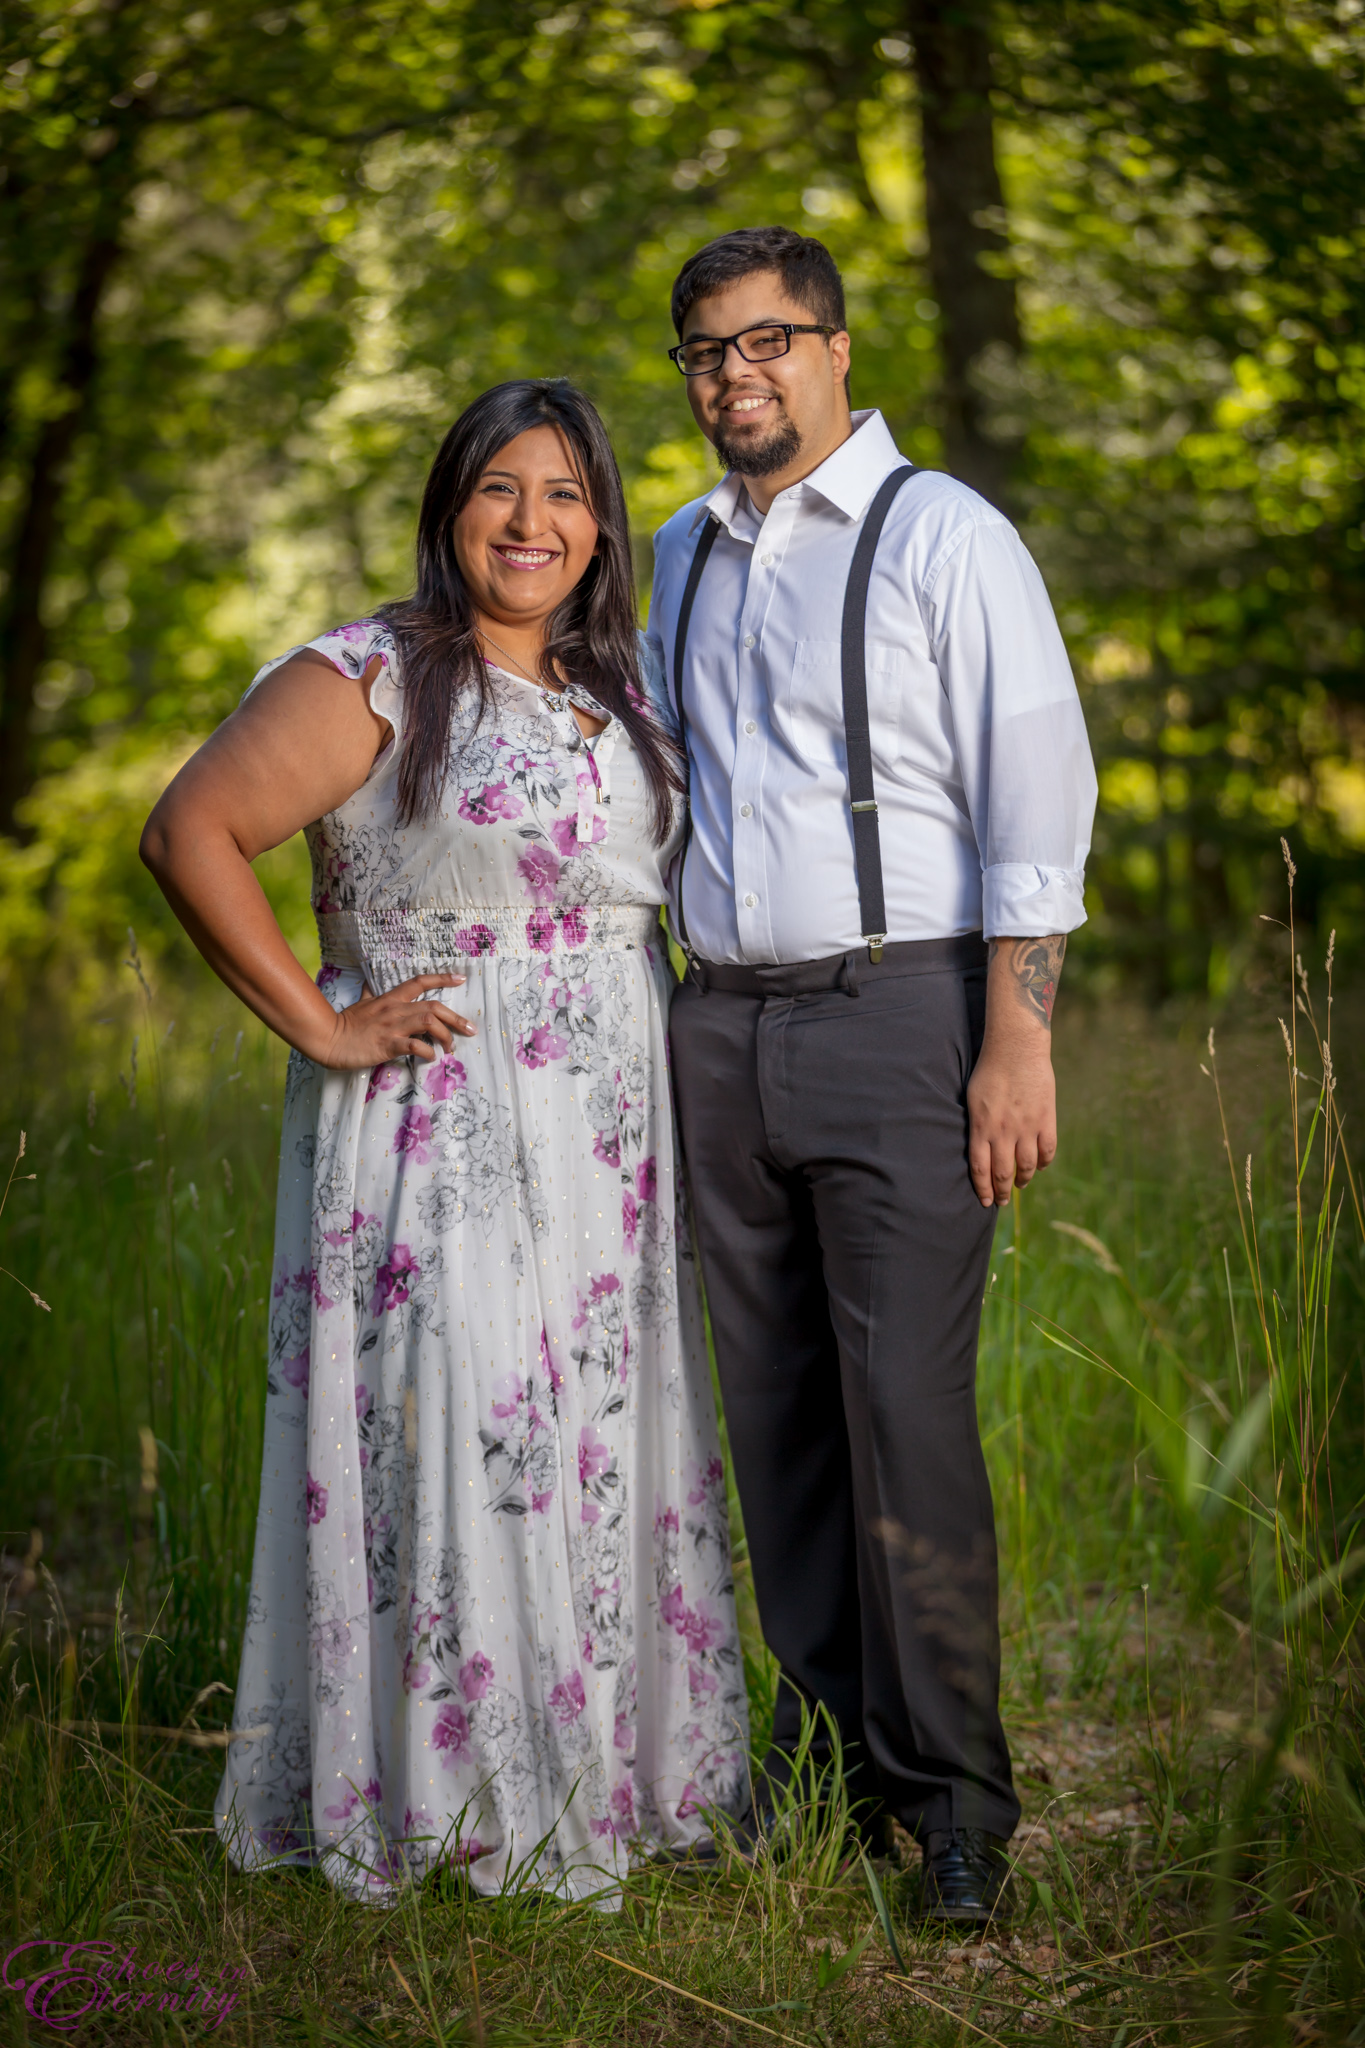 Zach and EJ Tucson Wedding and Engagement Photographer Mt. Lemmon Windy Point 01.jpg